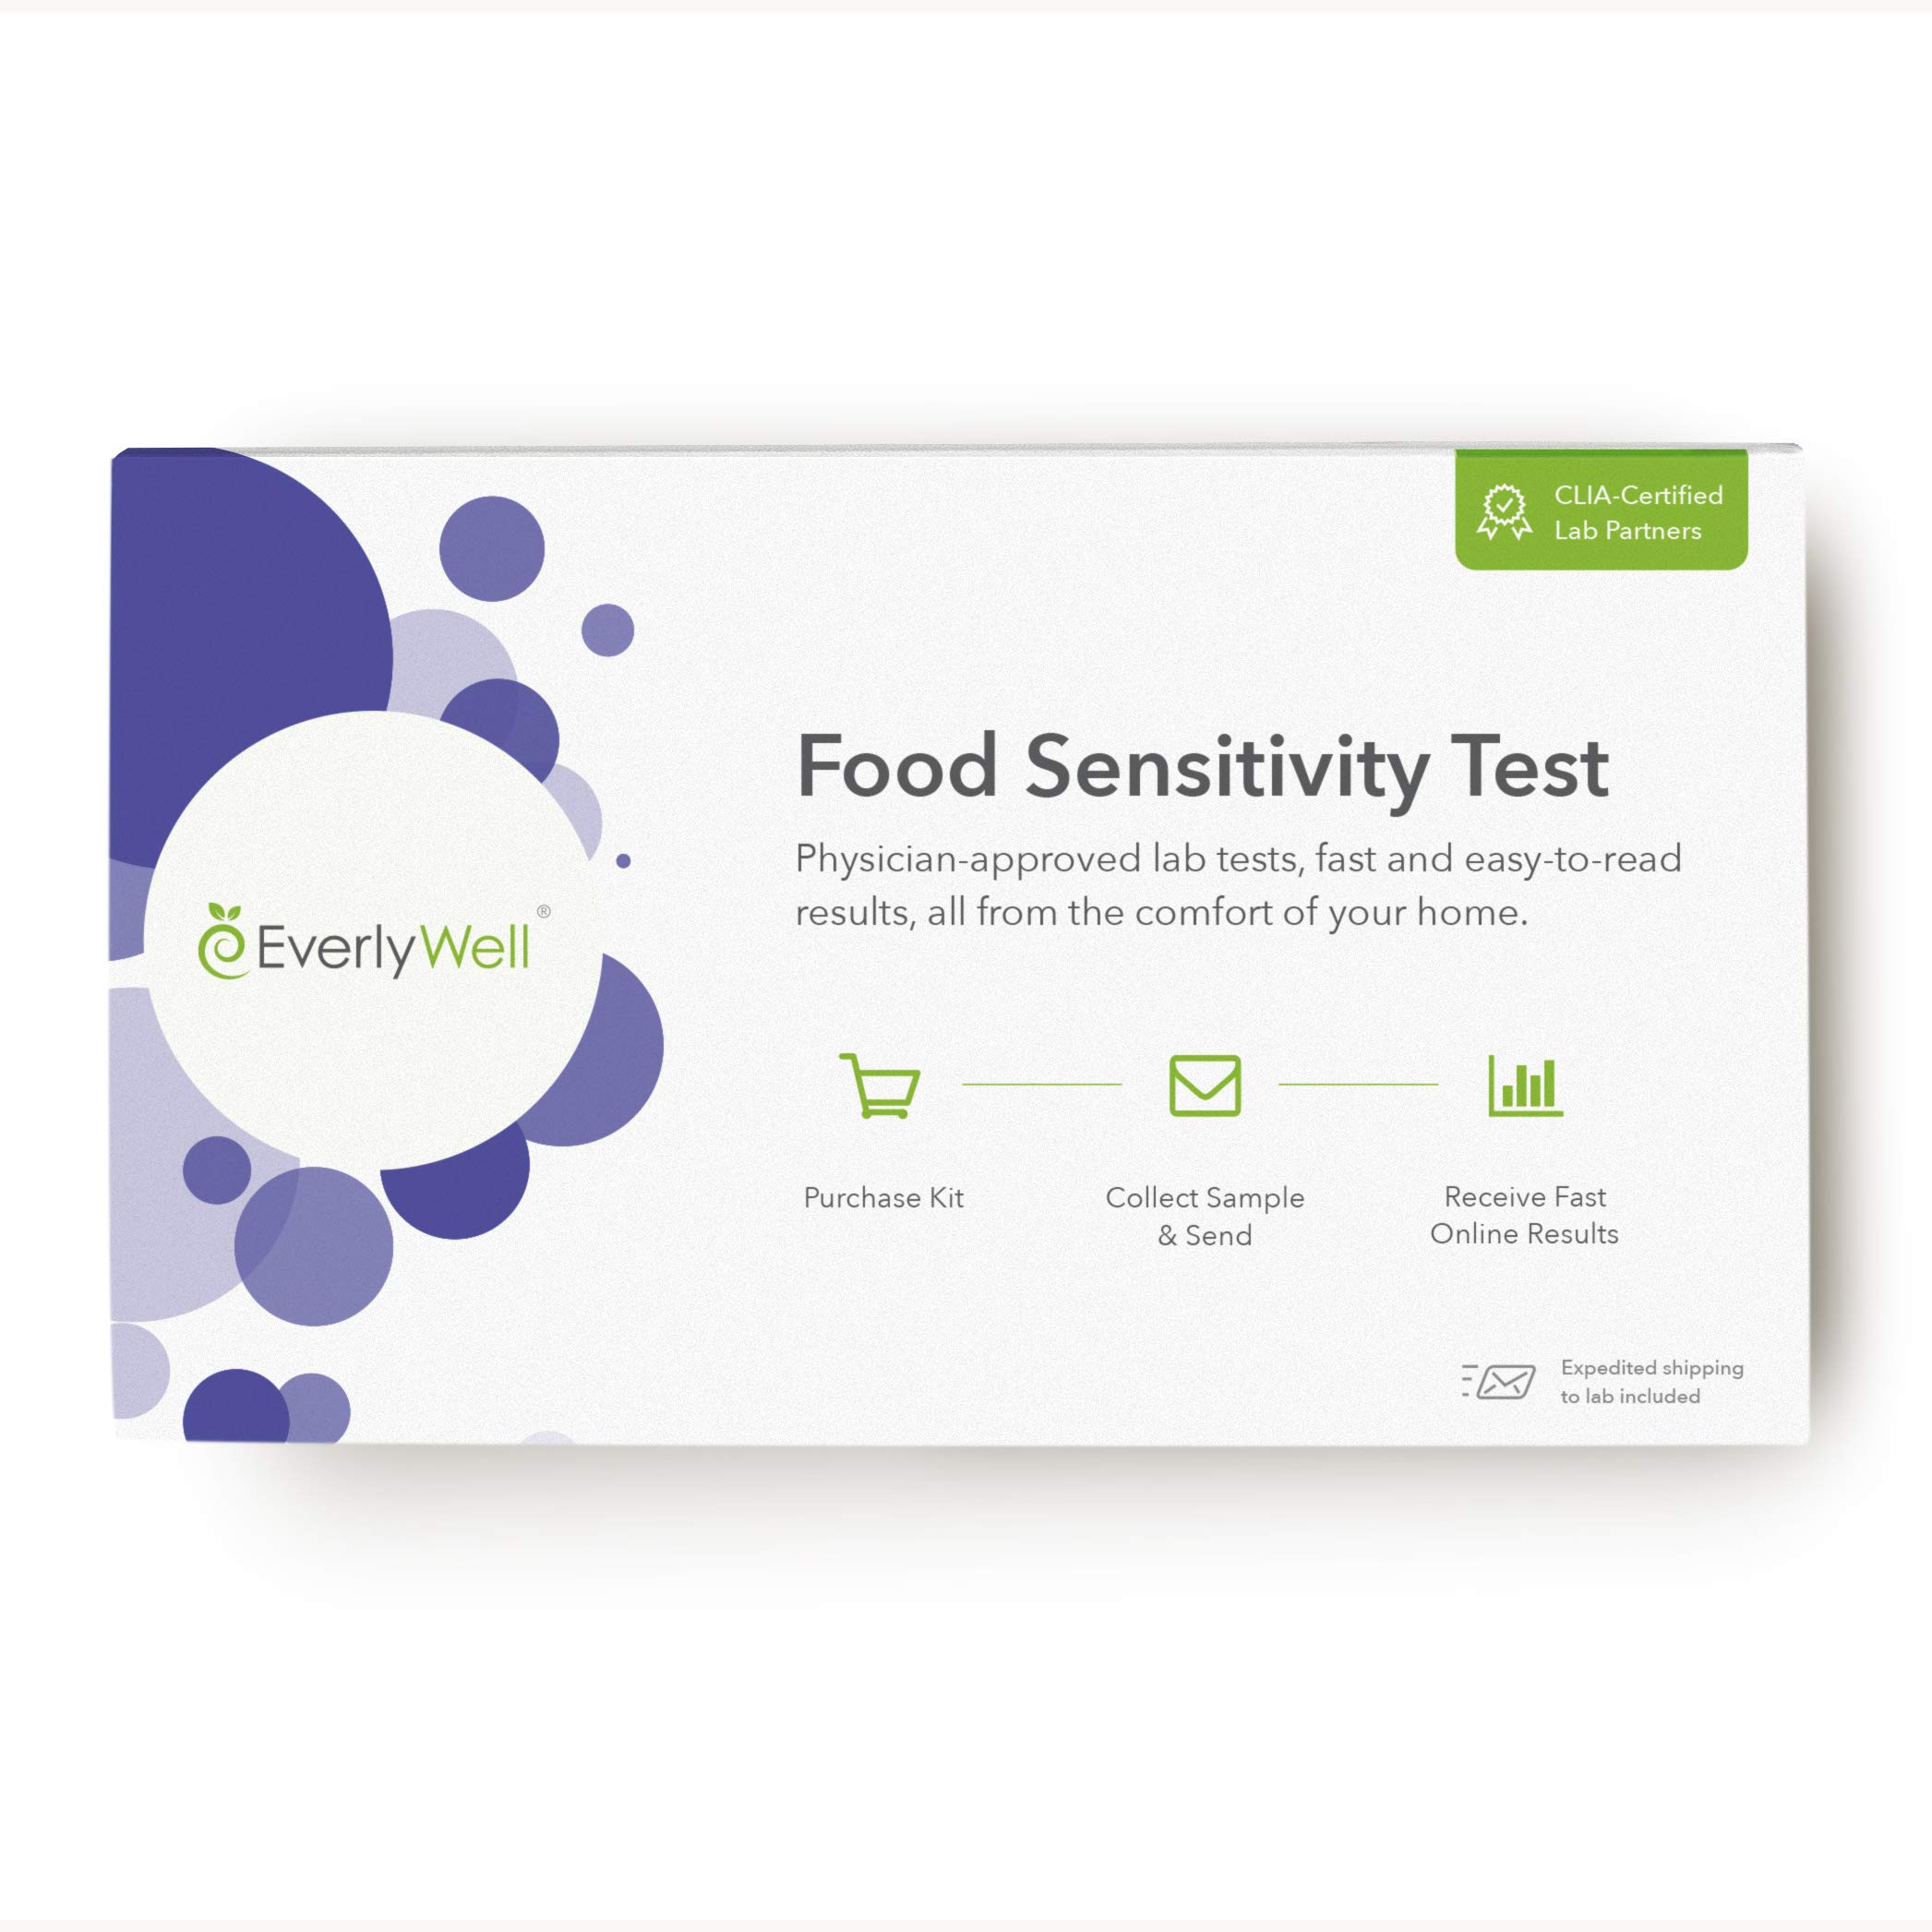 EverlyWell - at-Home Food Sensitivity Test- Learn How Your Body Responds to 96 Different Foods (Not Available in MD,New York, NJ, RI) by Everly Well